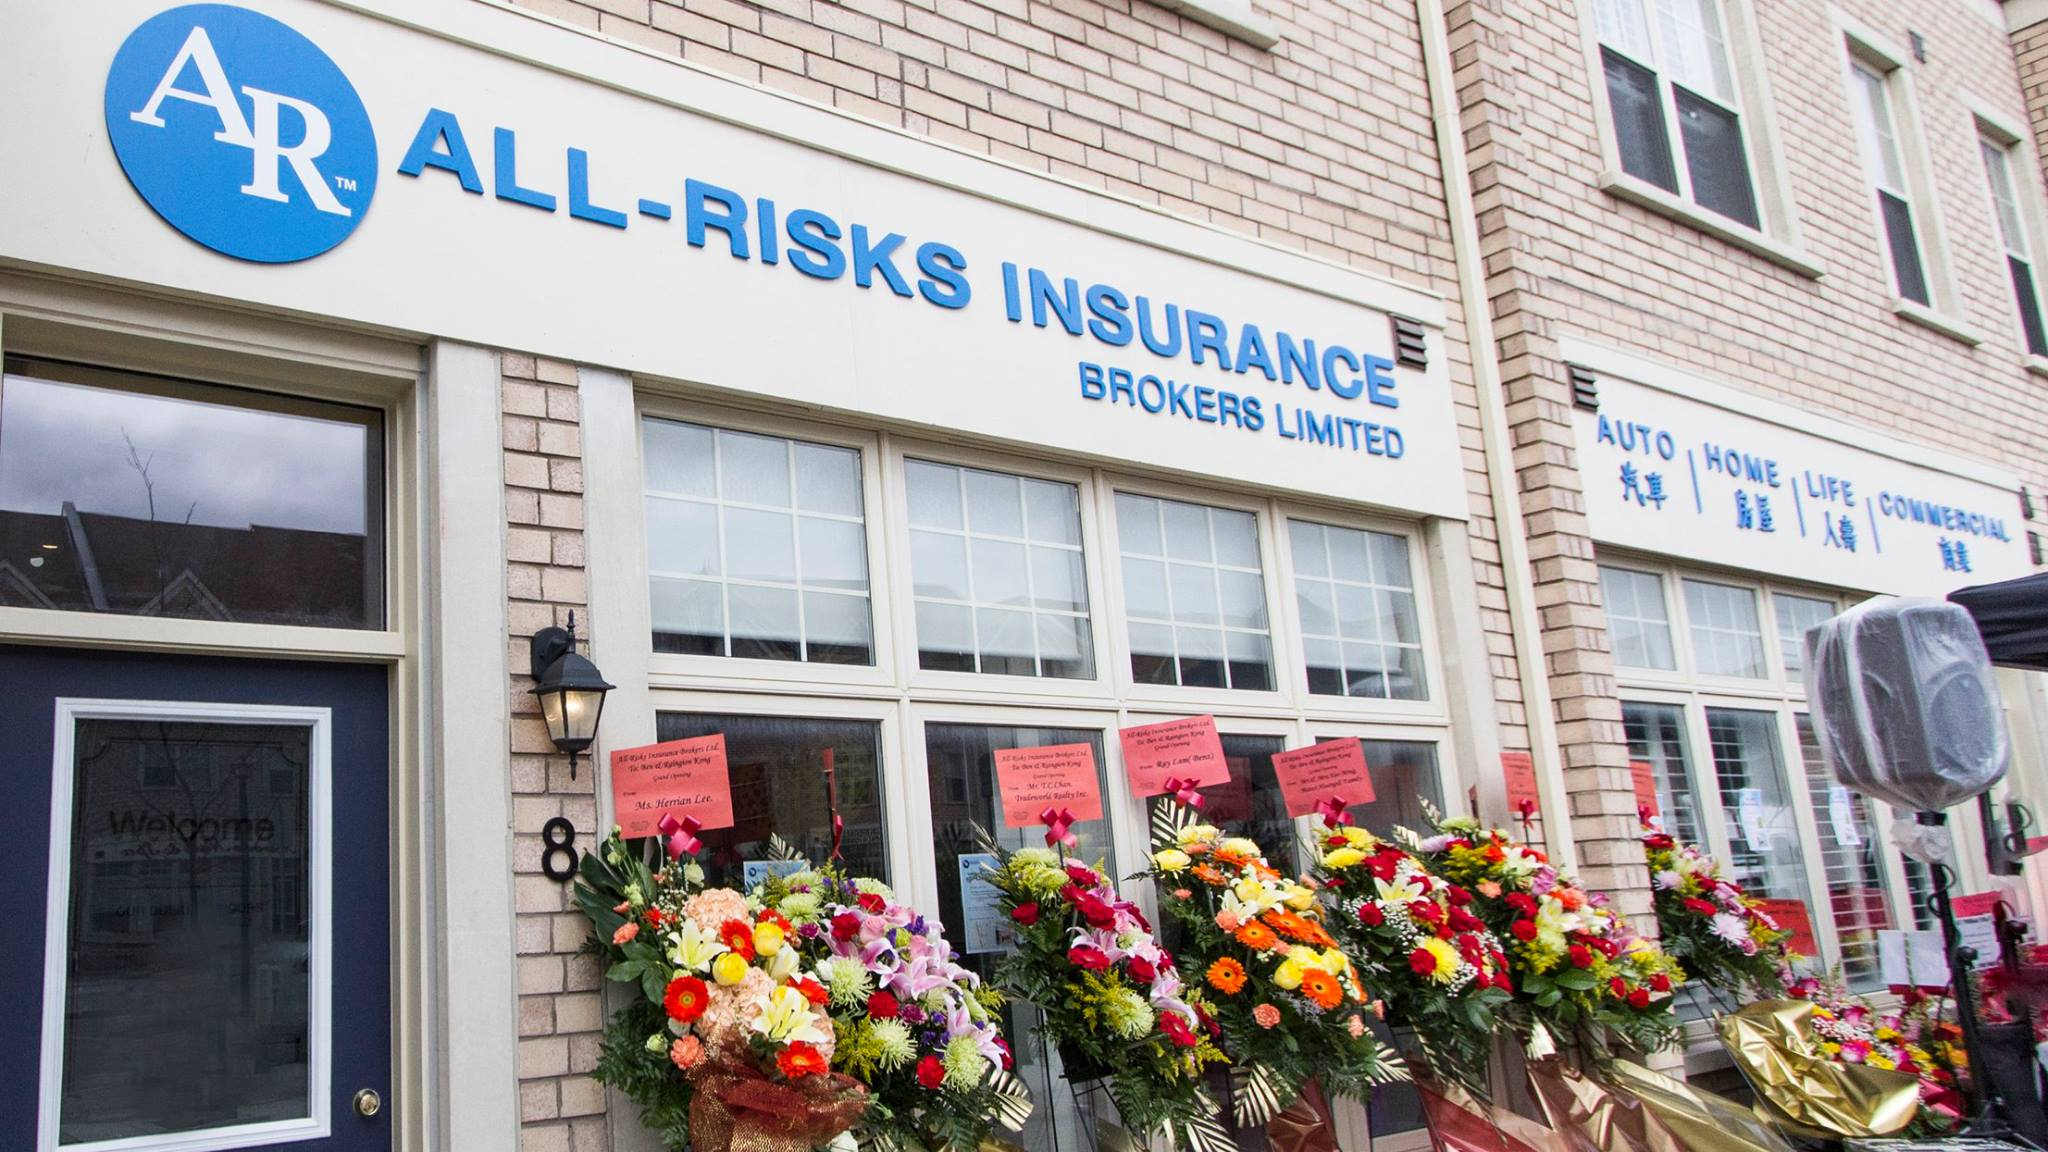 All-Risks Insurance Brokers Limited - Cathedral Town